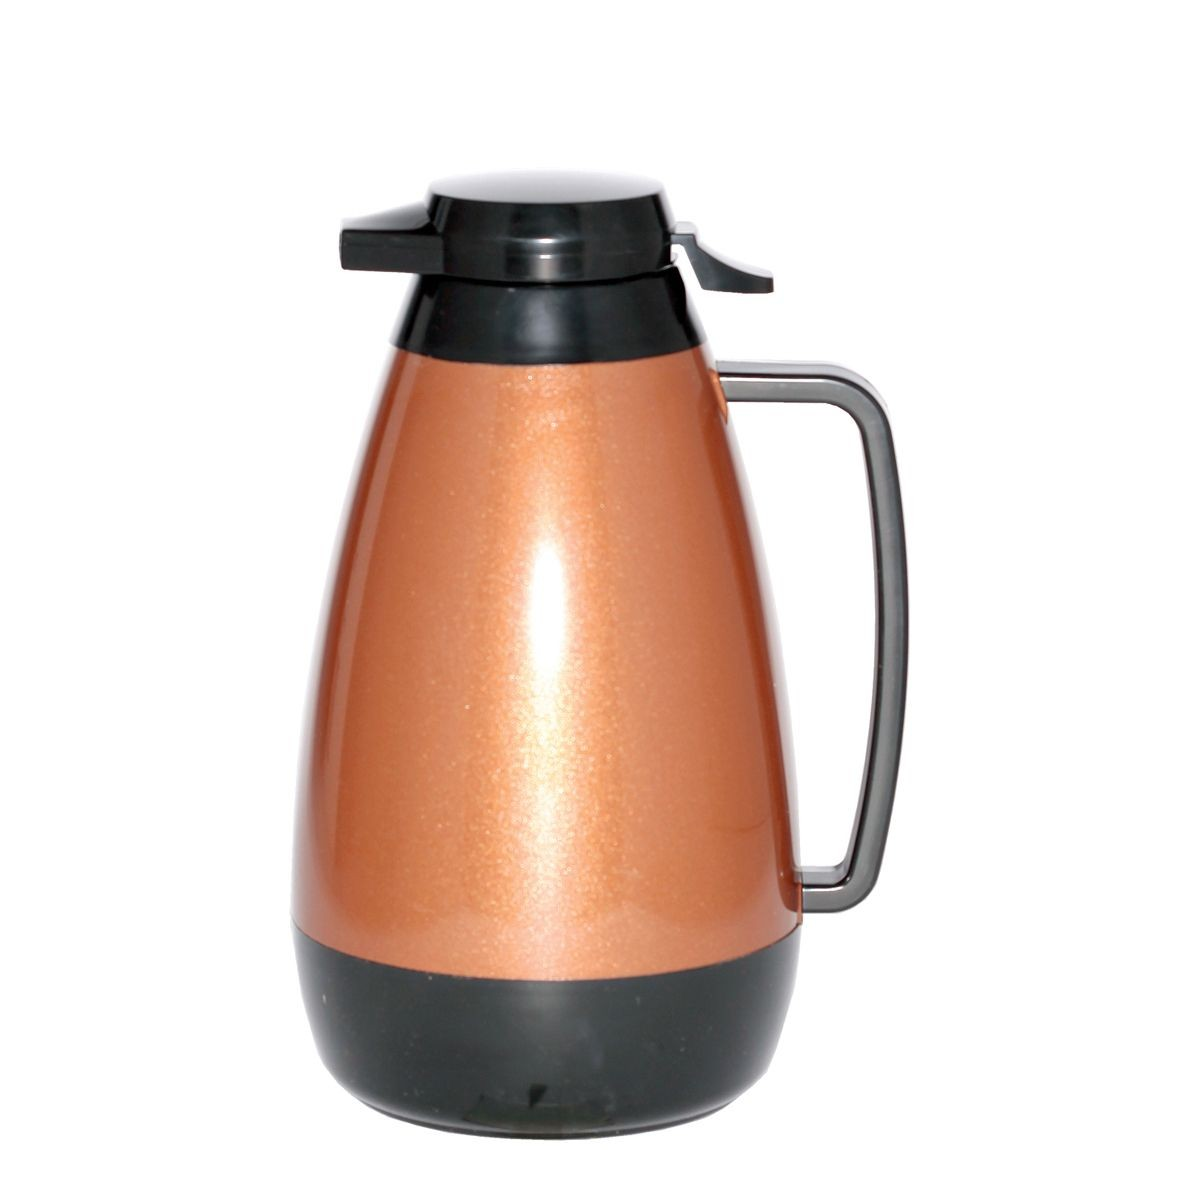 Service Ideas PB421CB Thermo-Serv Copper and Black Push Button Coffee Server, 2 Liter (68 oz.)